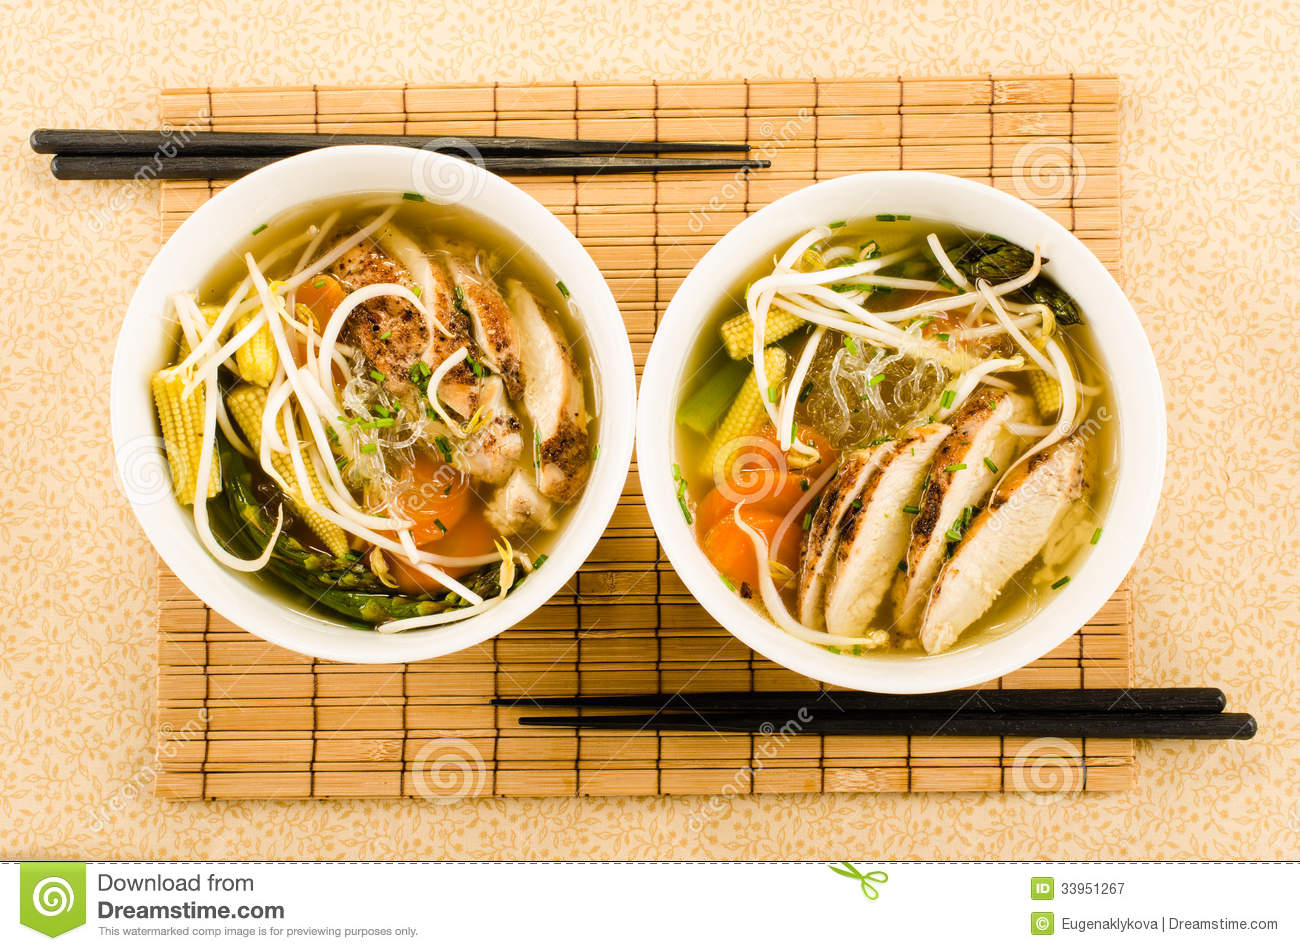 Asian chicken noodle soup with glass noodles, beam sprouts and v